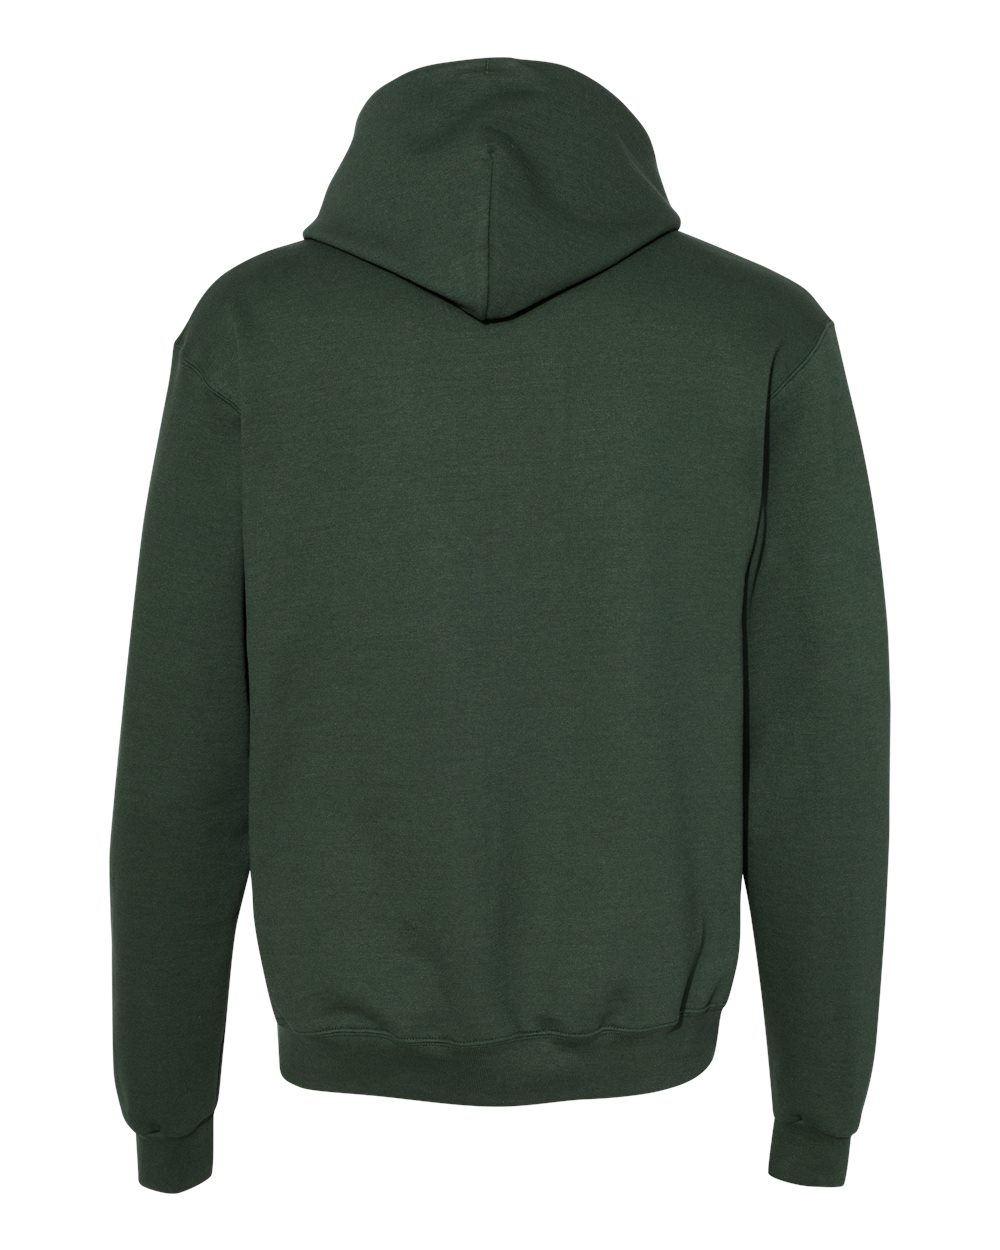 Champion-Mens-Double-Dry-Eco-Hooded-Sweatshirt-Hoodie-Pullover-S700-up-to-3XL miniature 13